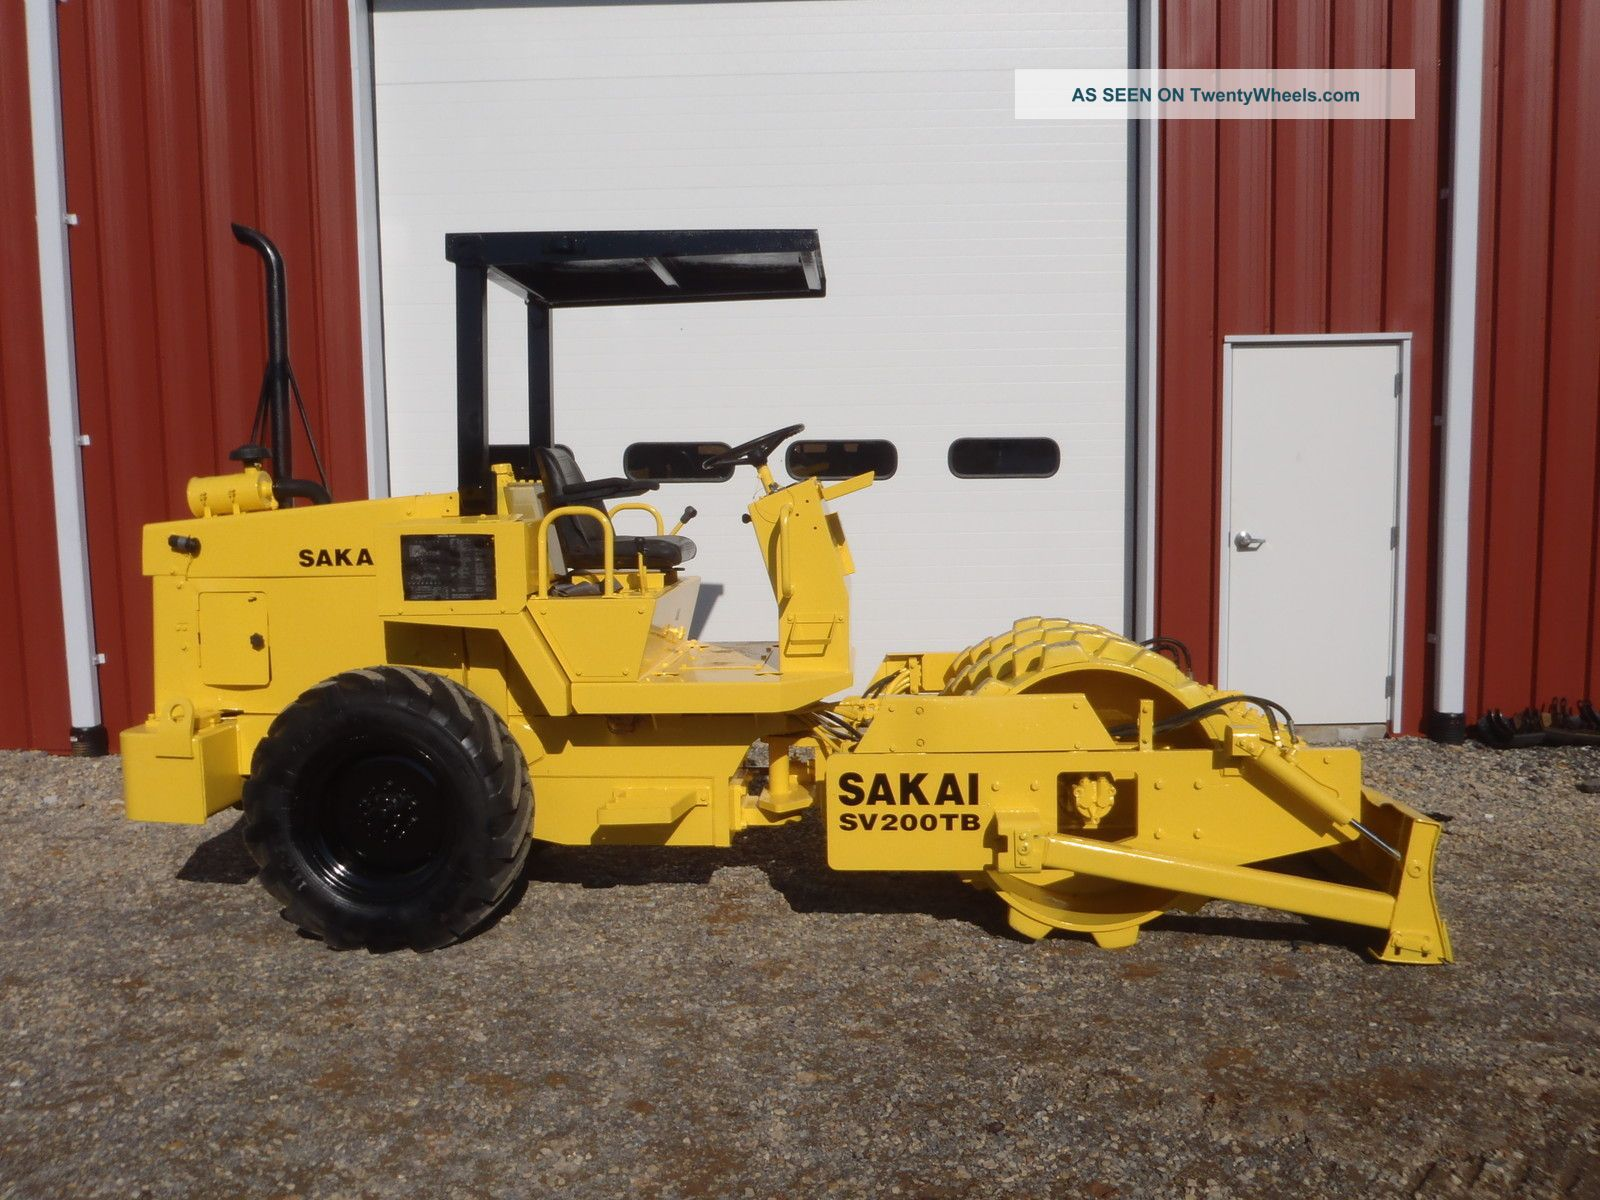 2001 Sakai Sv200tb Vibratory Sheeps Foot Padfoot Roller Push Blade Only 1455 Hrs Compactors & Rollers - Riding photo